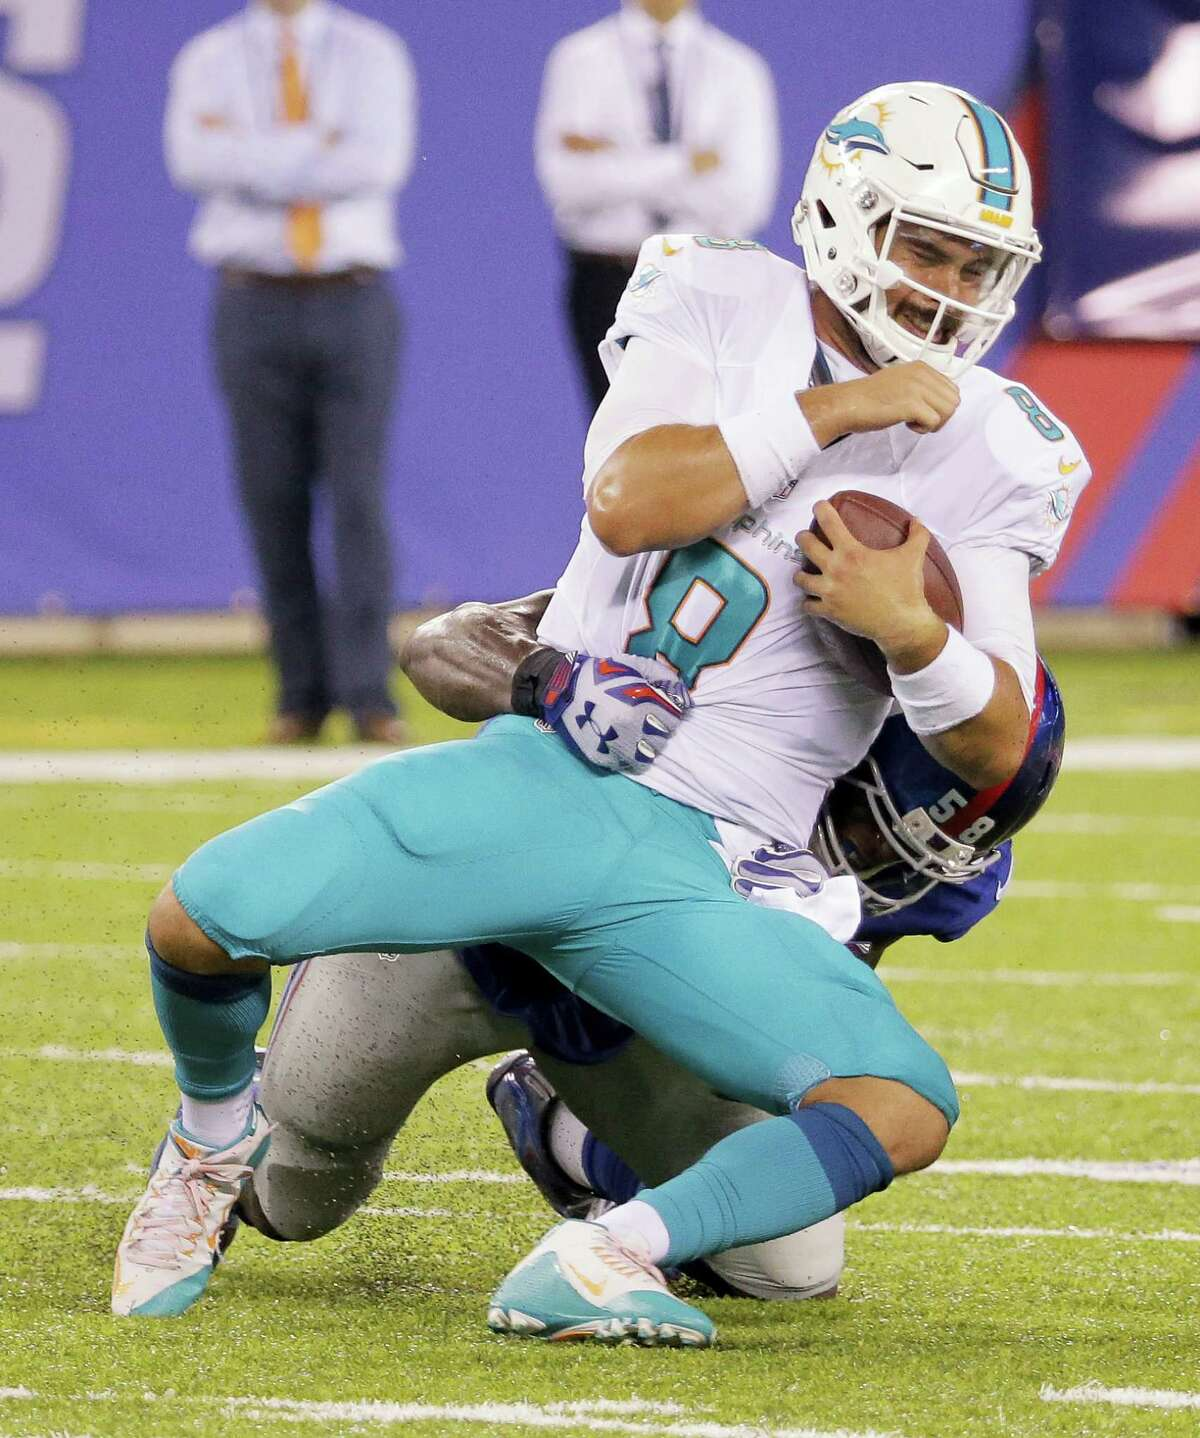 Dolphins quarterback Matt Moore is sacked by Giants defensive end Owa Odighizuwa during Friday's preseason game.